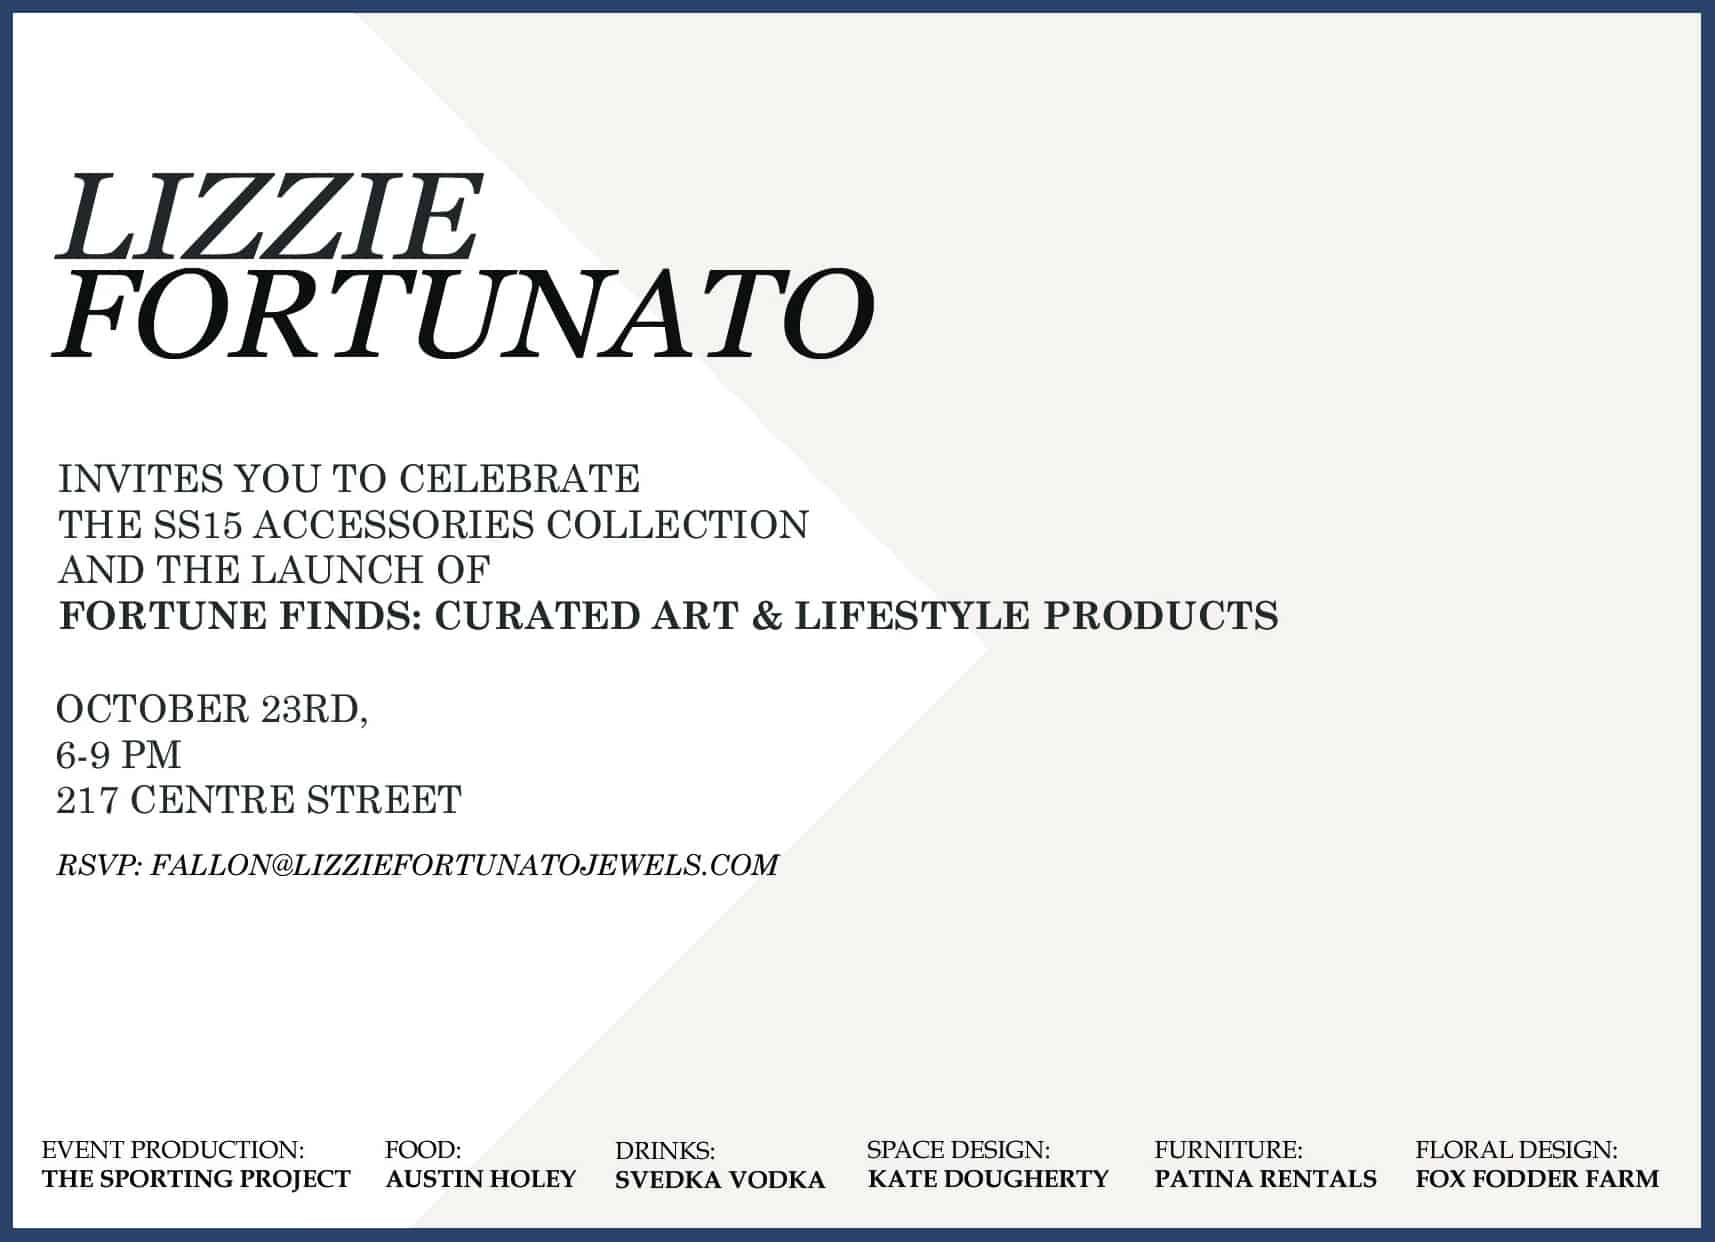 Lizzie Fortunato Fortune Finds invite